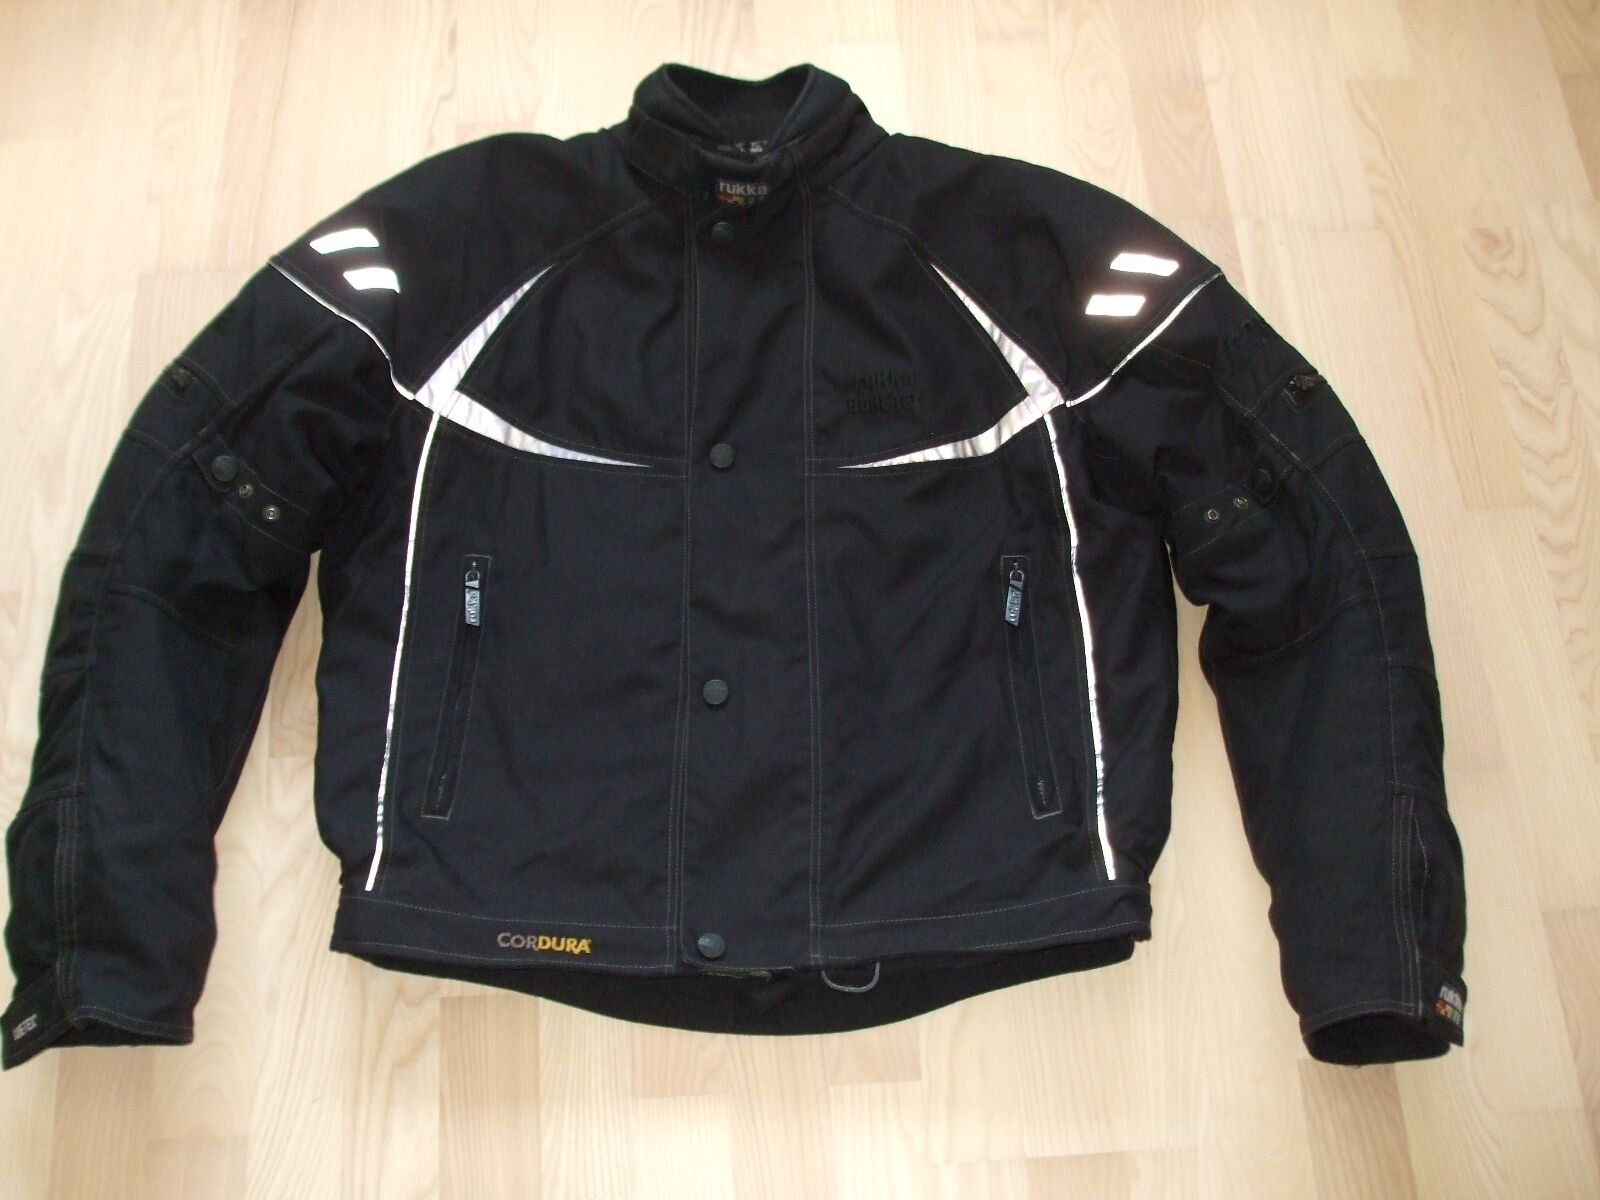 herren motorradjacke rukka gr 54 gore tex eur 199 99. Black Bedroom Furniture Sets. Home Design Ideas